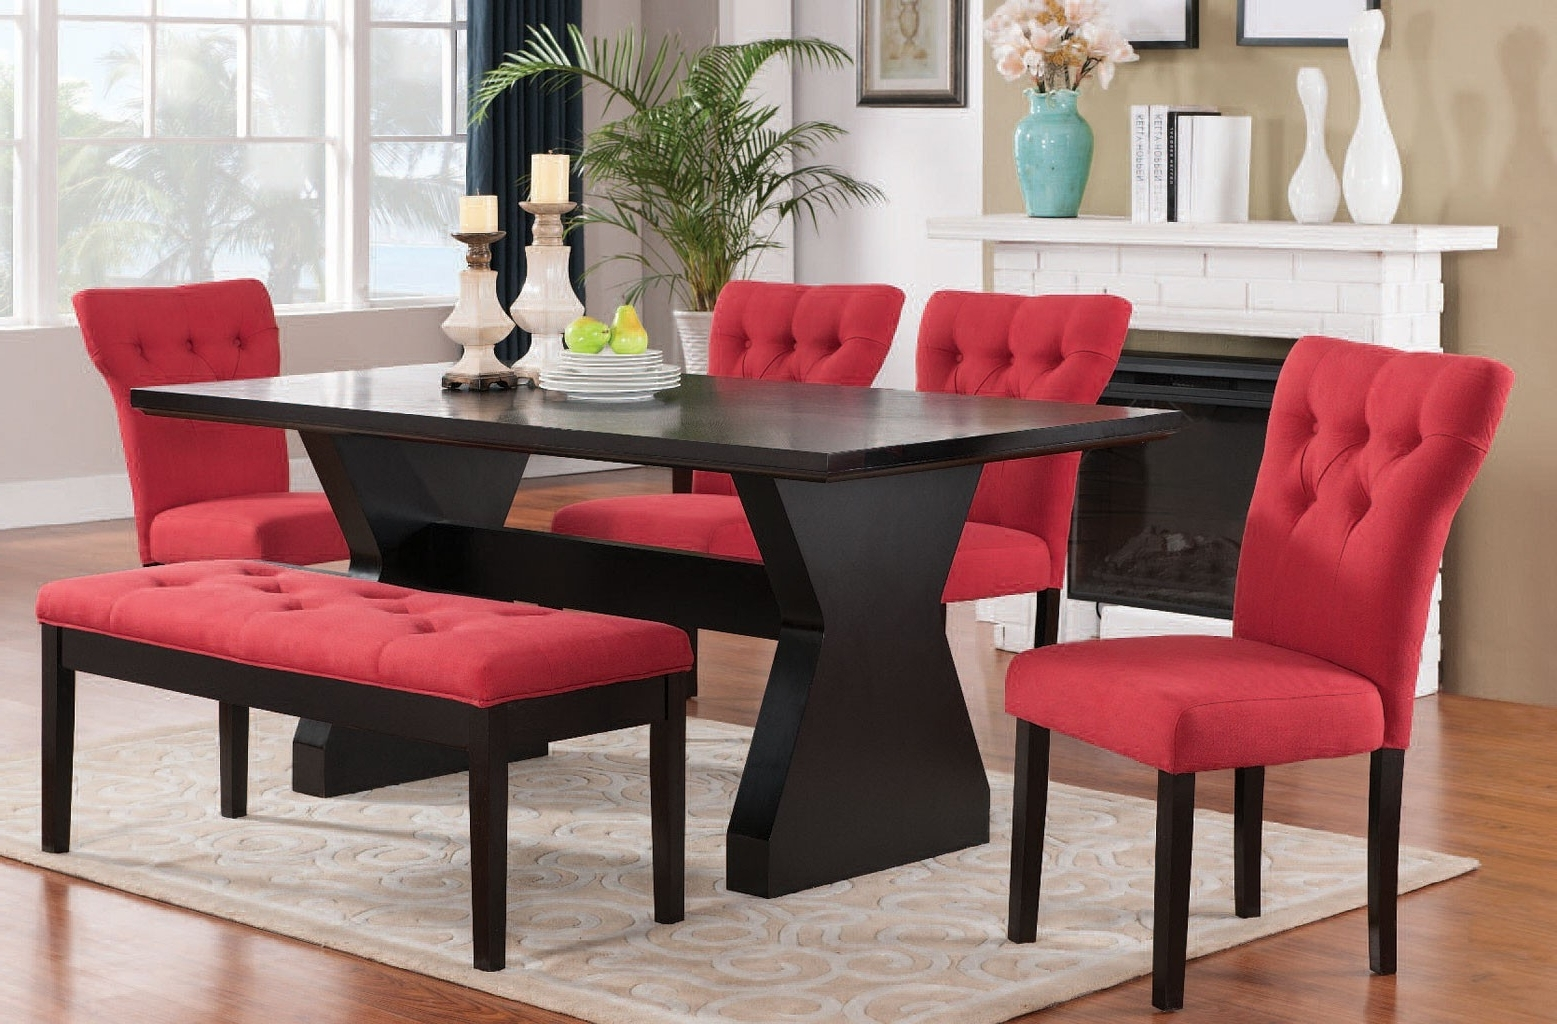 2018 Red Dining Chairs For Your Dining Rooms - Home Decor Ideas pertaining to Red Dining Table Sets